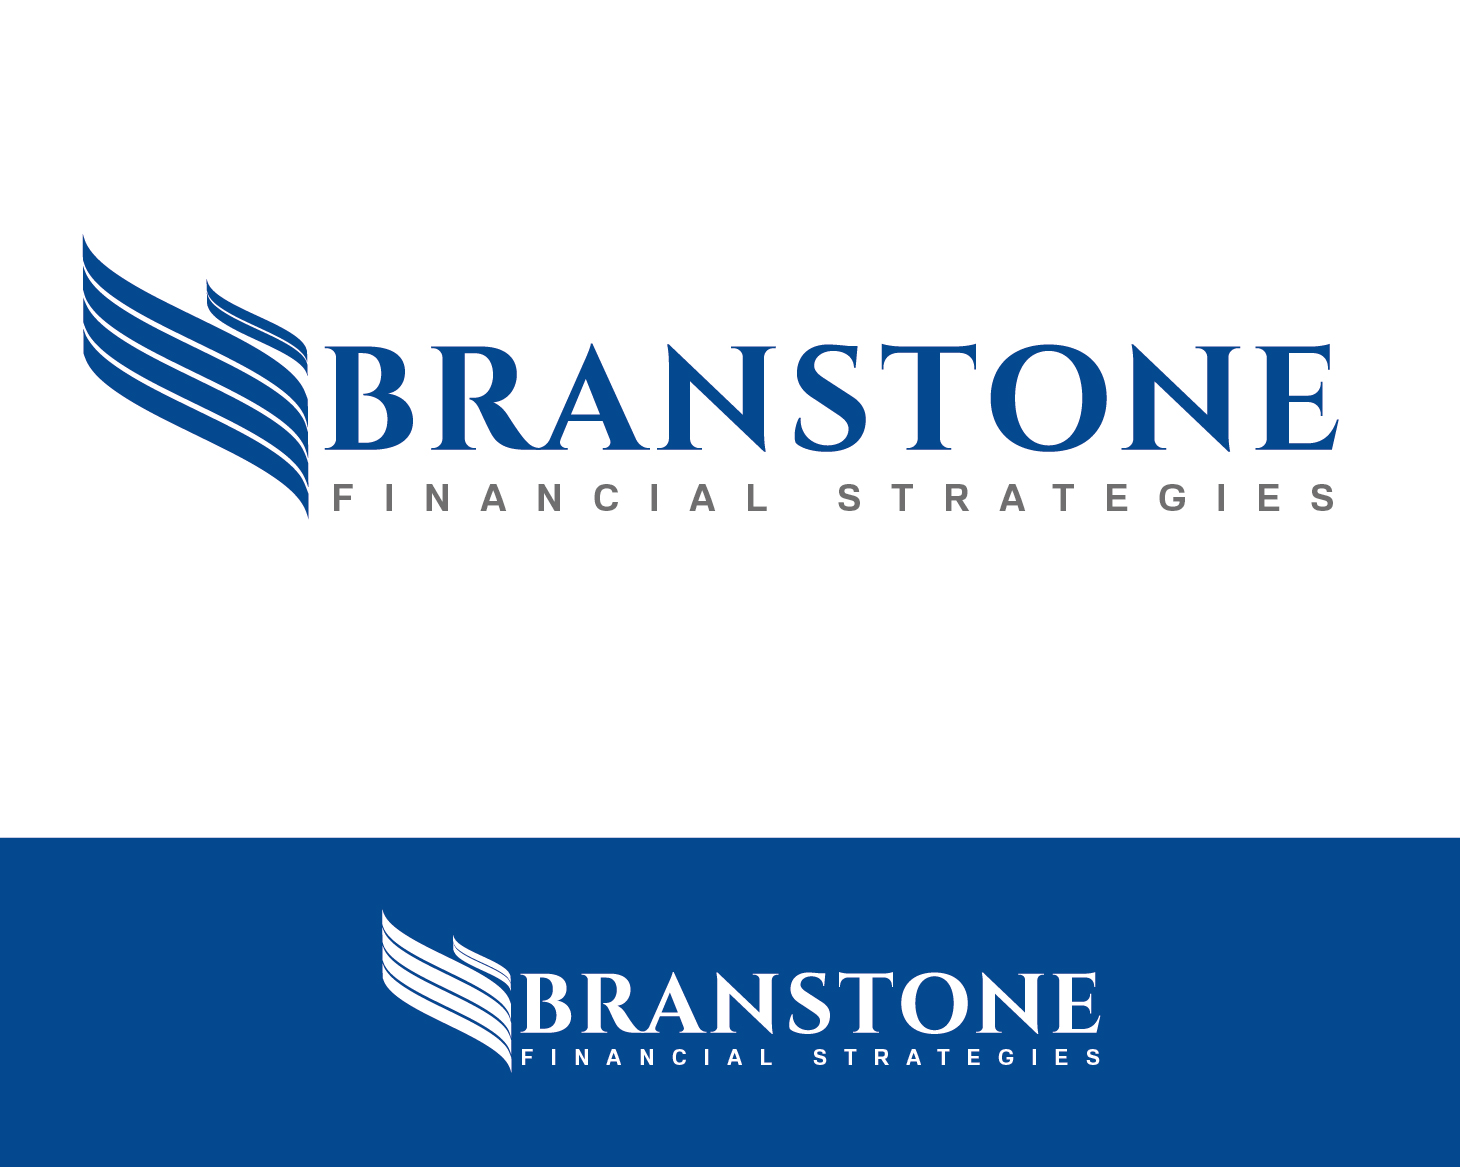 Logo Design by VENTSISLAV KOVACHEV - Entry No. 225 in the Logo Design Contest Inspiring Logo Design for Branstone Financial Strategies.